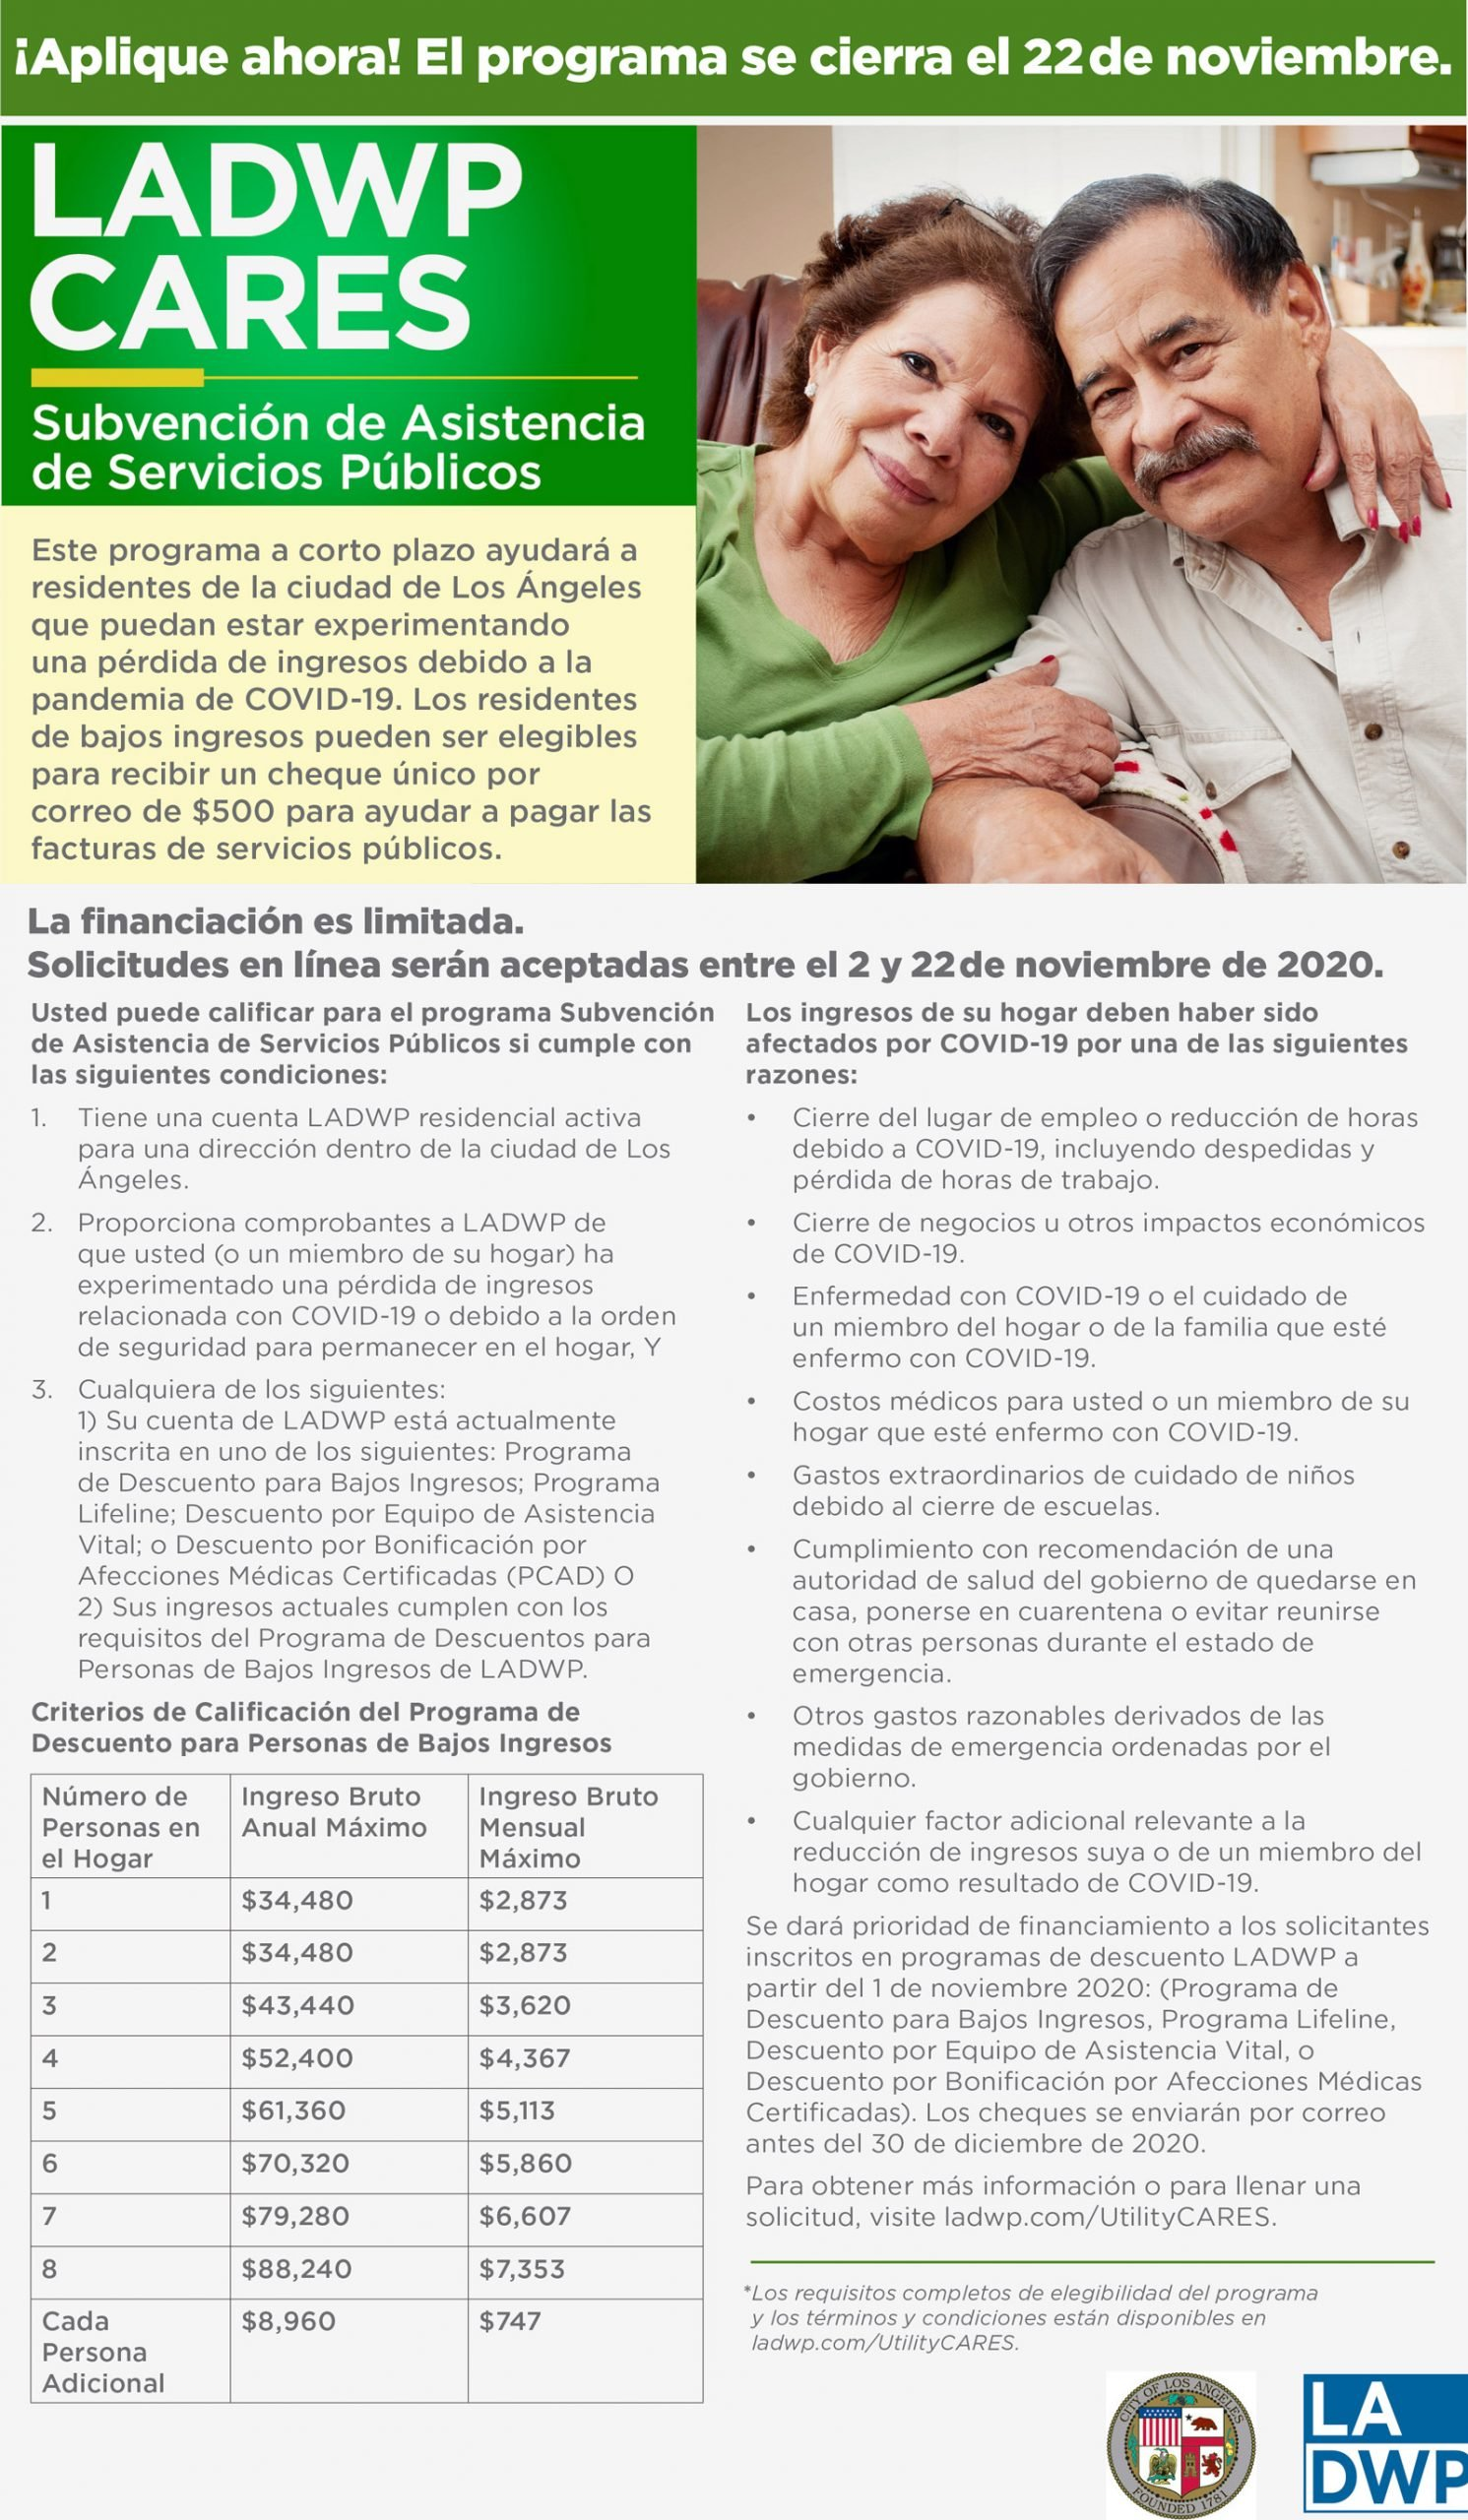 2020_LADWP-CARES-InfoFlyer_ESP-V2